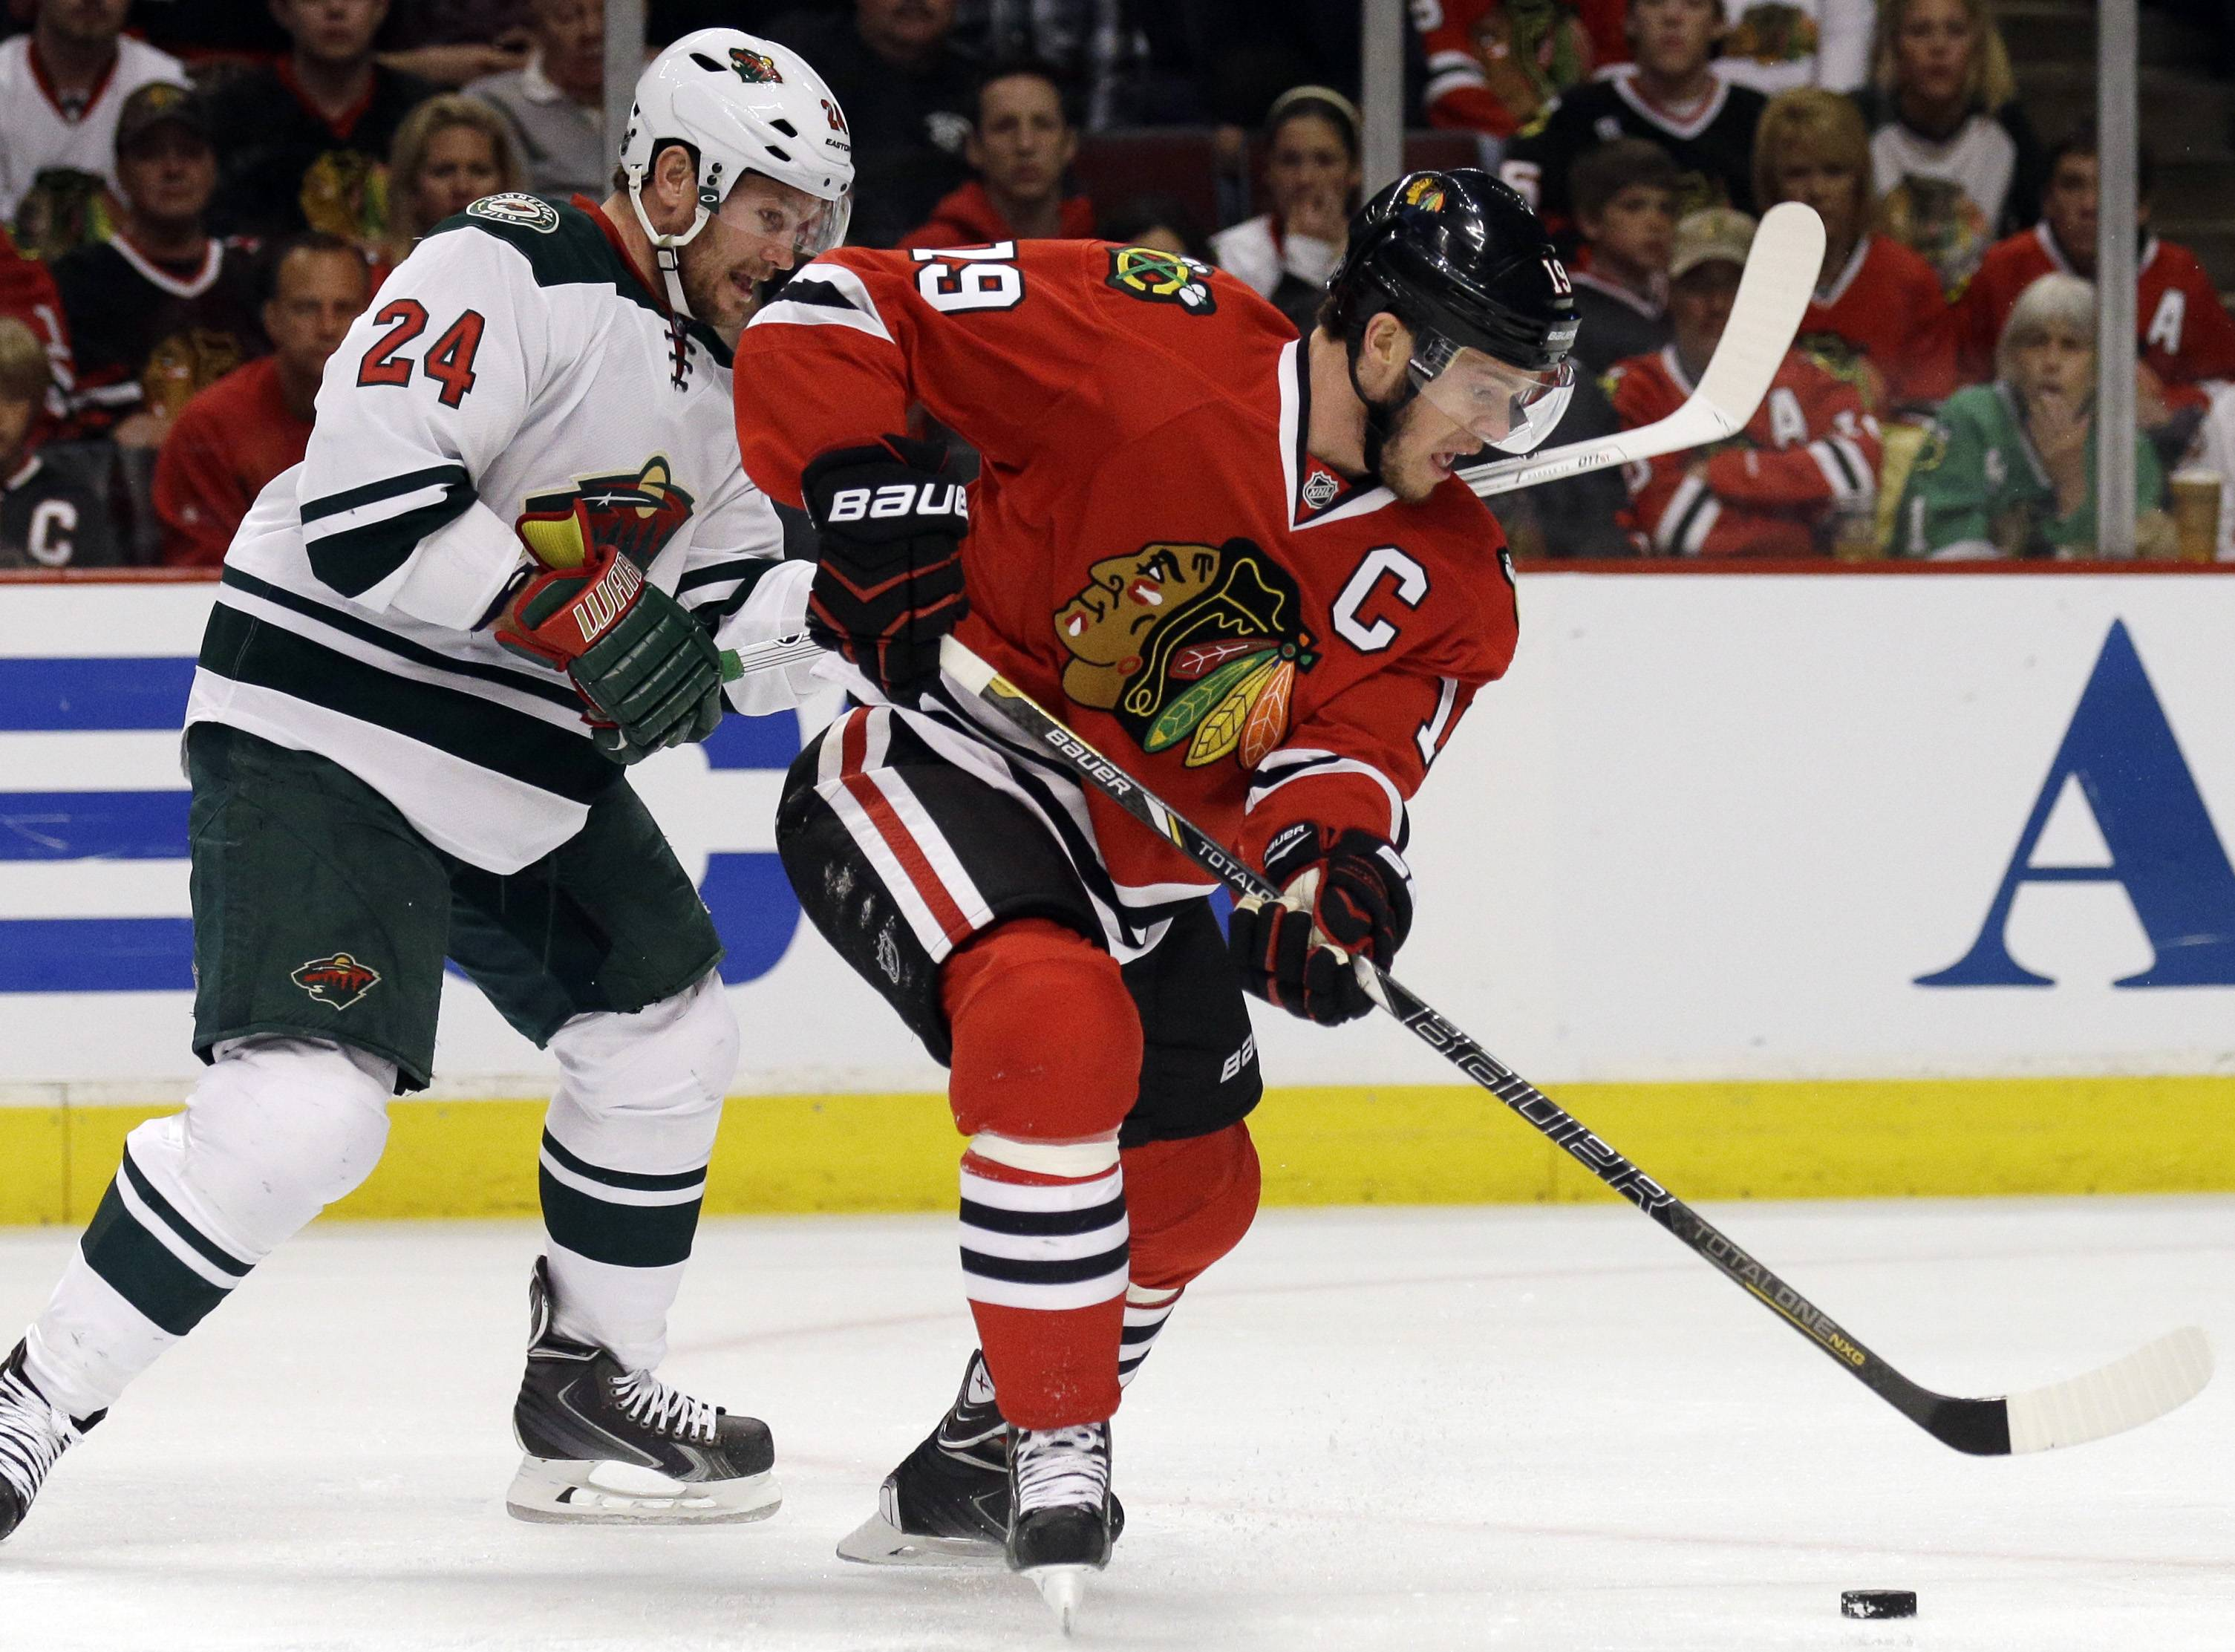 Chicago Blackhawks' Jonathan Toews (19), right, controls the puck against Minnesota Wild's Matt Cooke (24) during the first period.